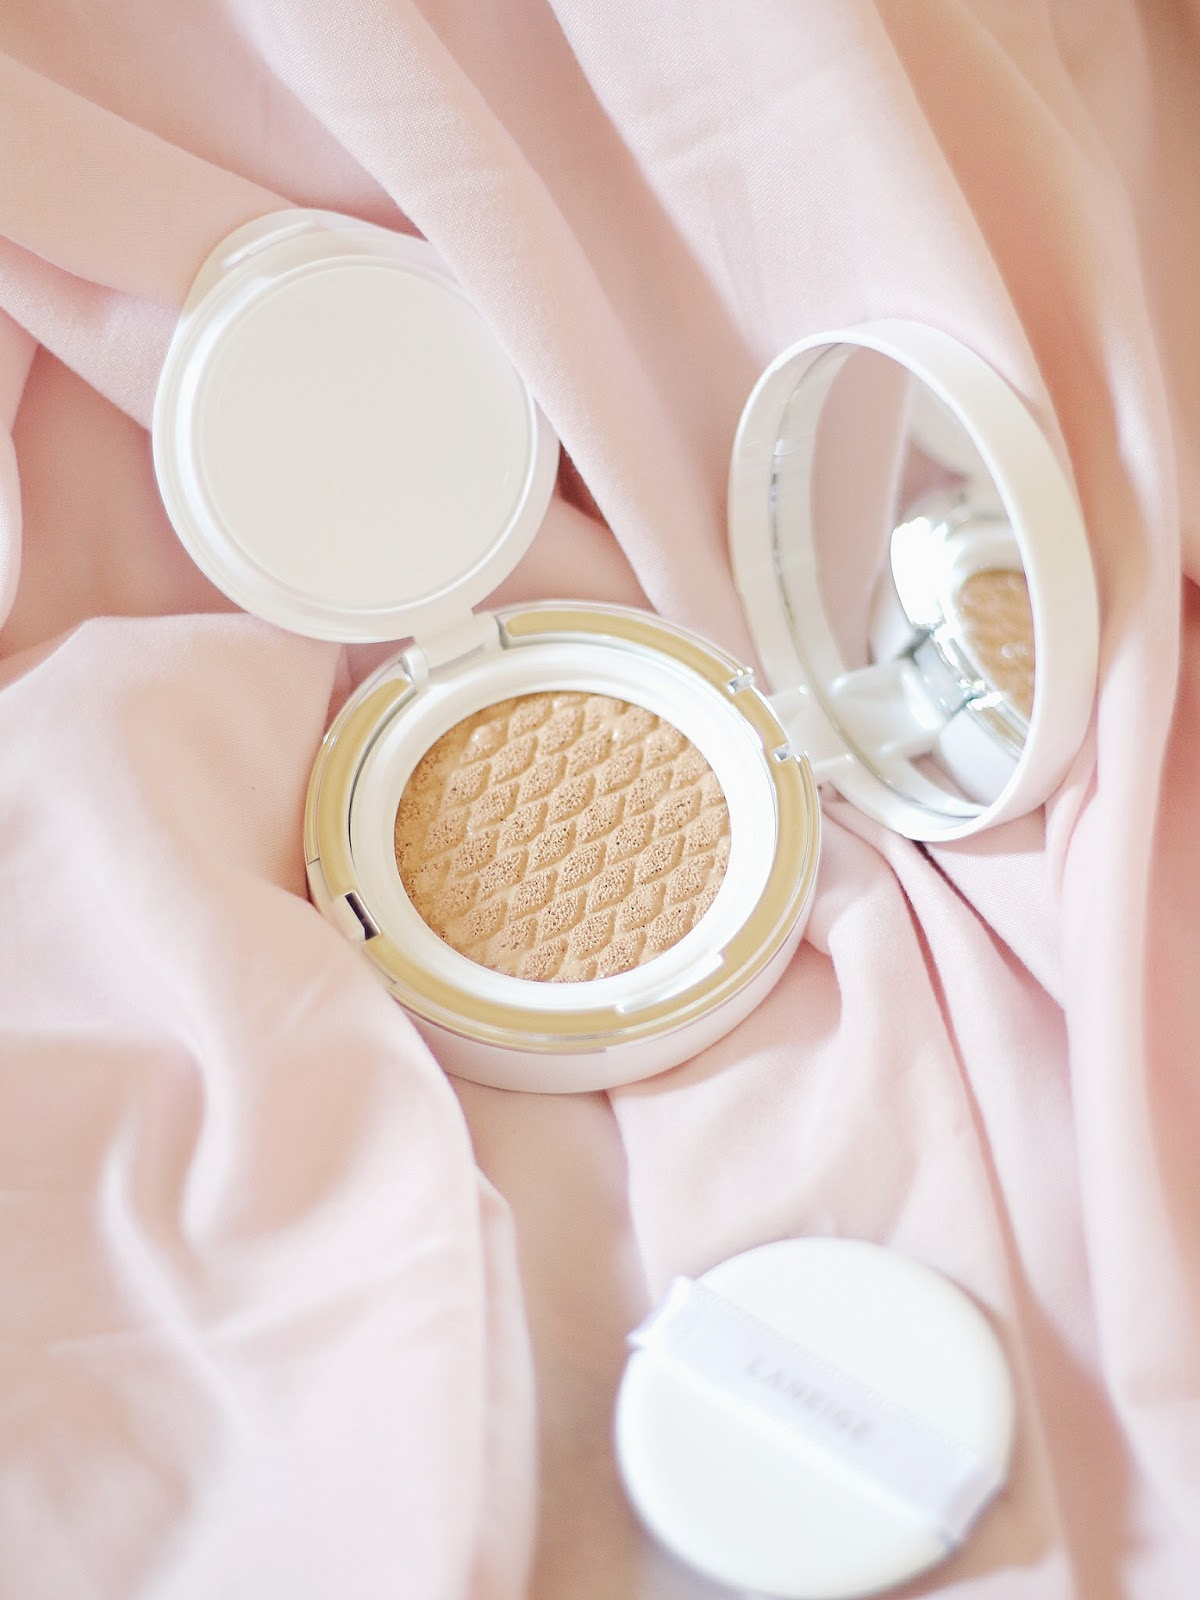 Laneige Pore Control Cushion Review in Sand